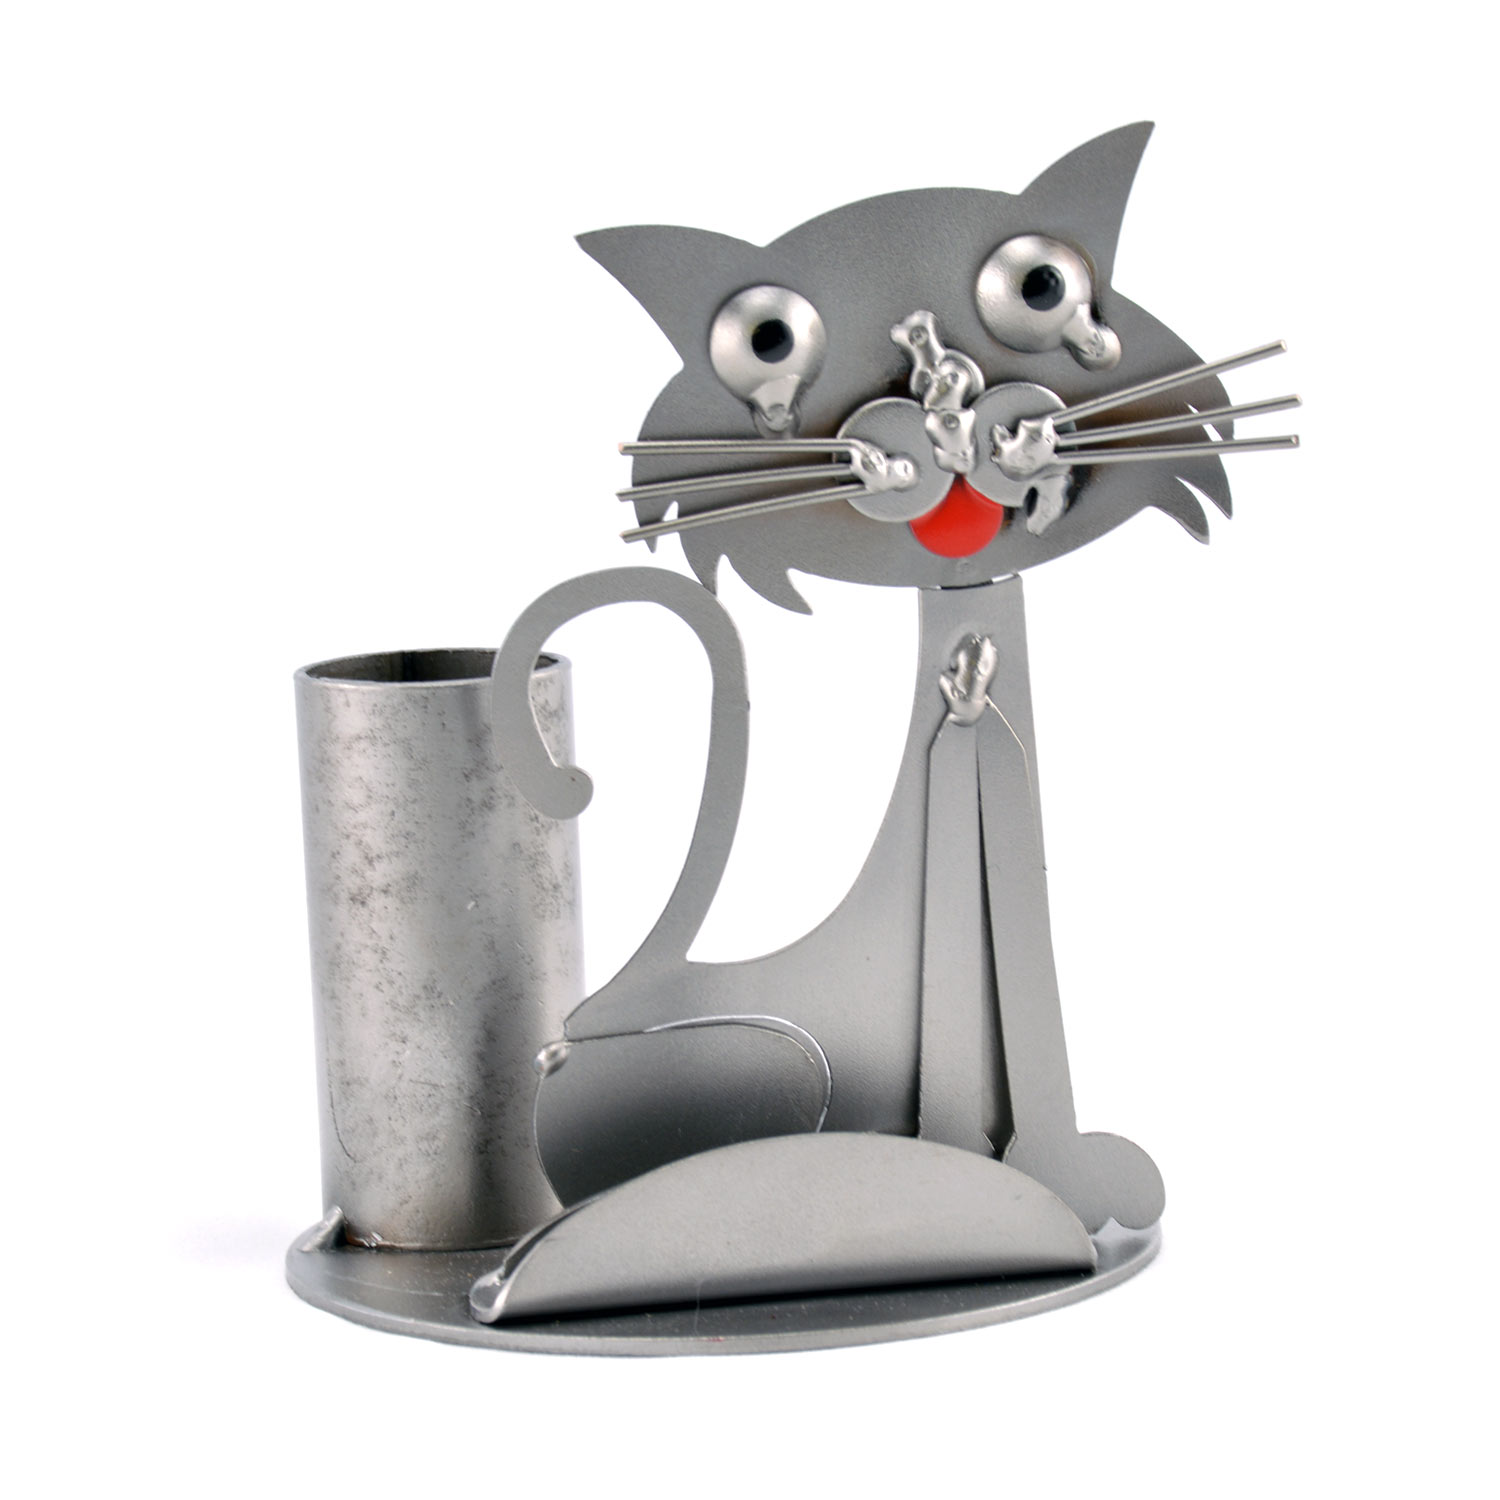 Cat business card holder metal cat business card holder colourmoves Choice Image